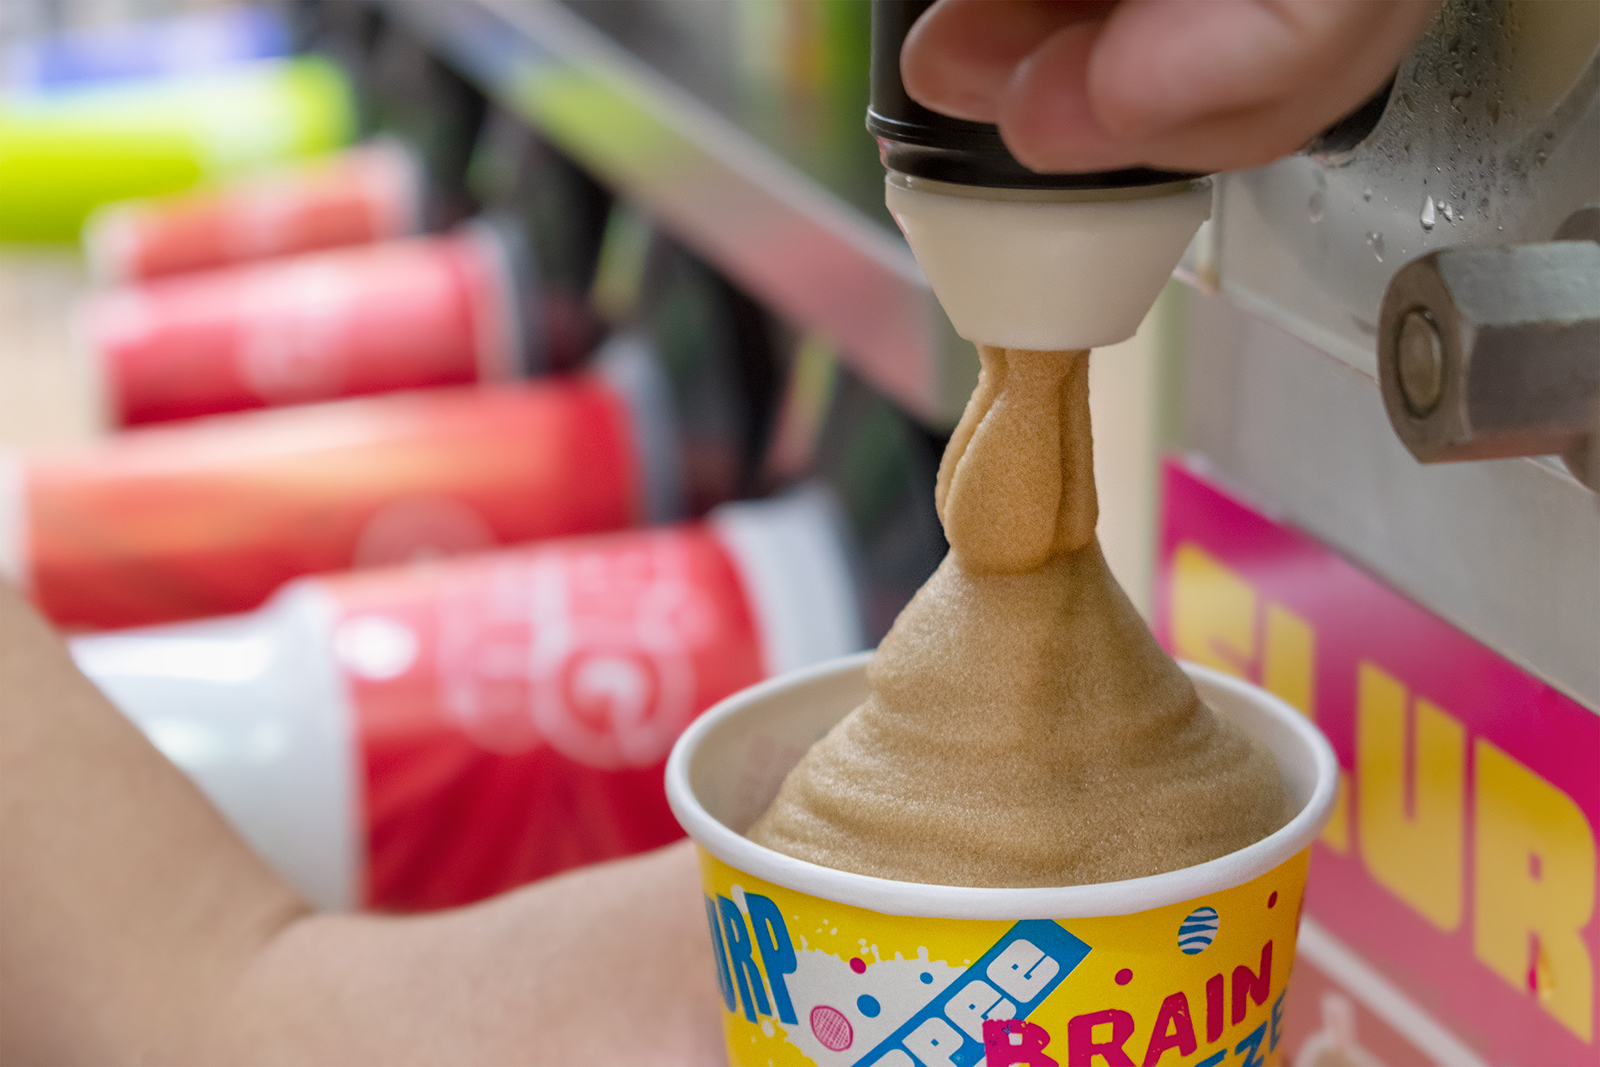 7-Eleven Day is canceled again. But you can still get a free Slurpee this July